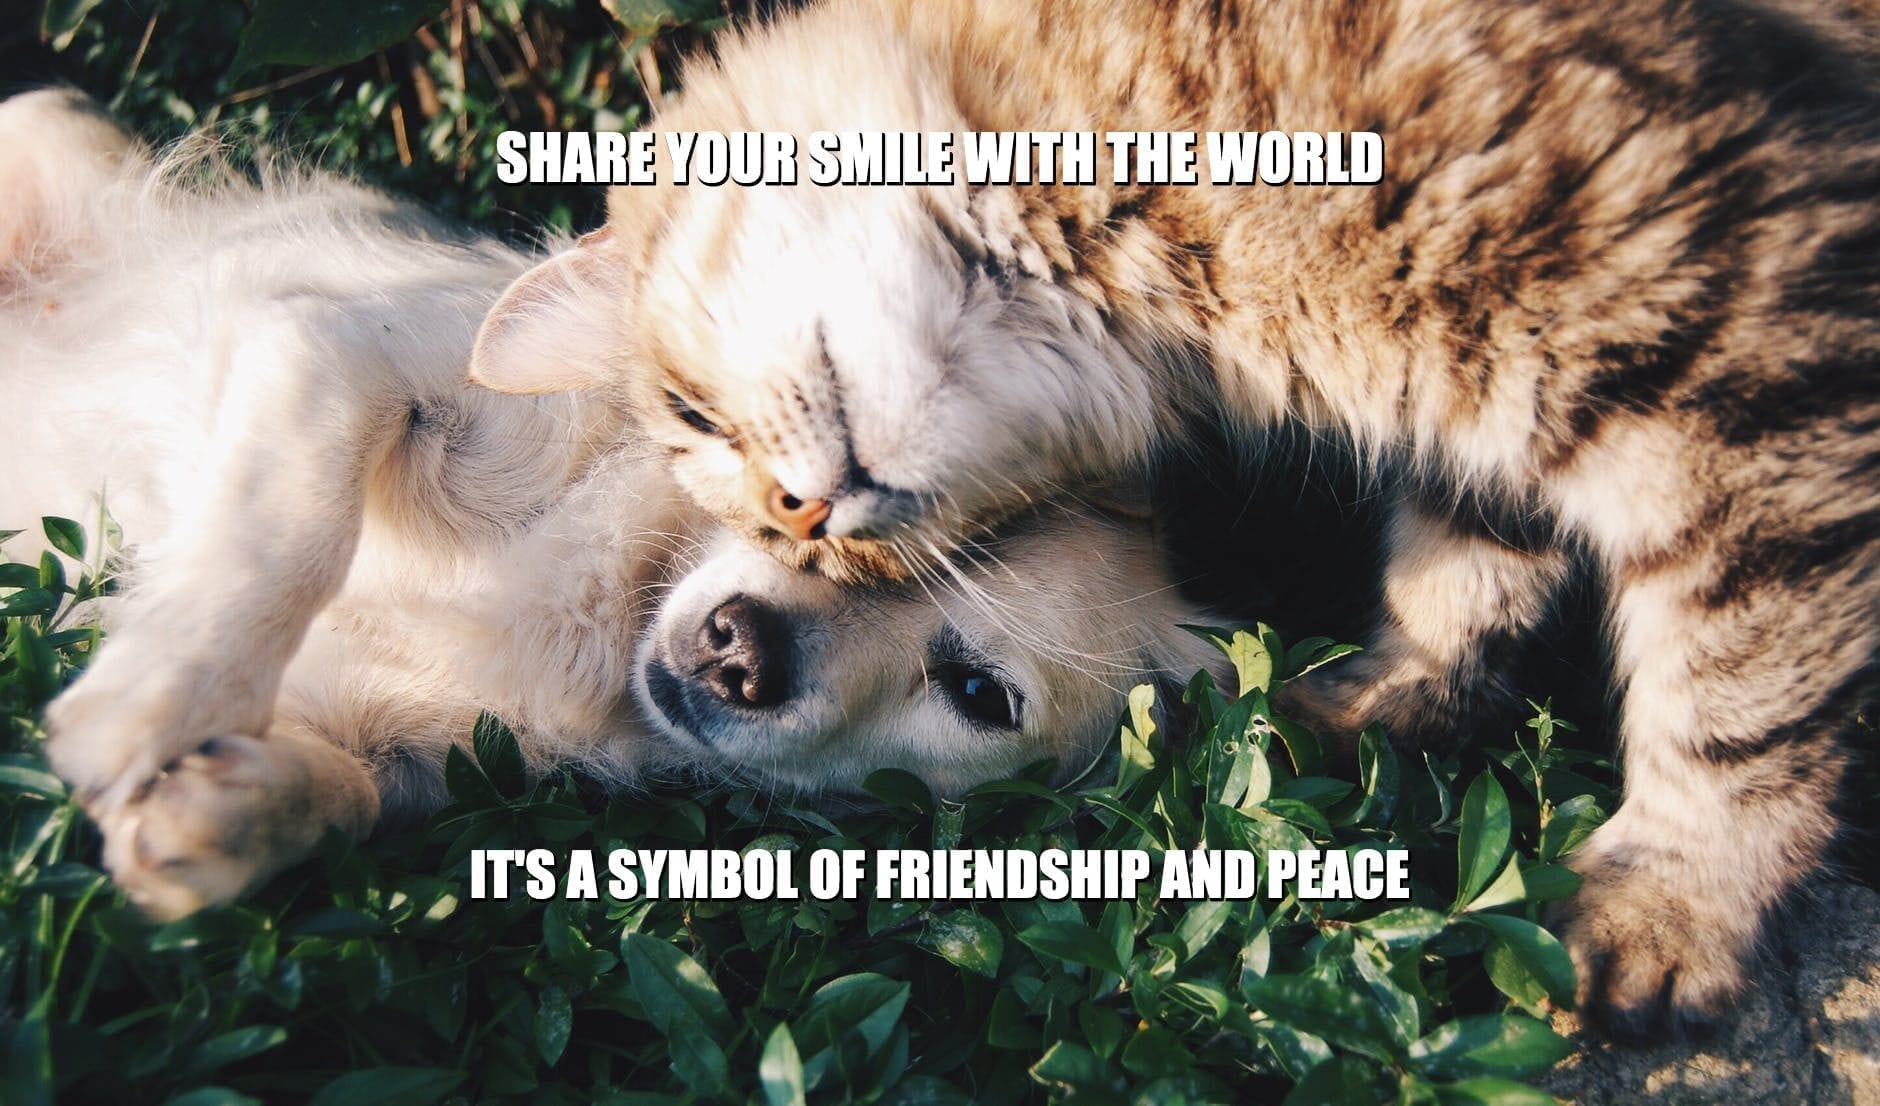 Daily Quotes: Share Your Smile With the World. It's a Symbol of Friendship and Peace petworldglobal.com